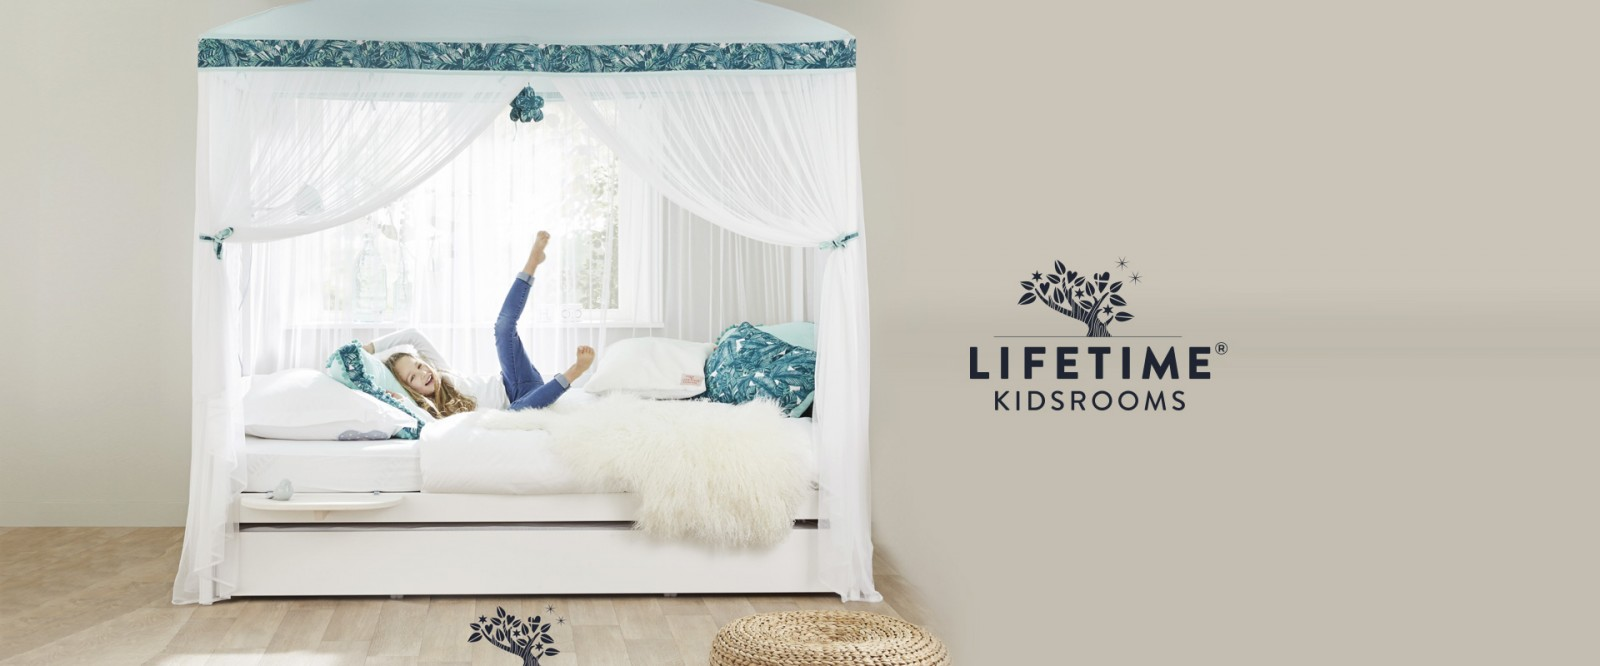 Lifetime Kids Rooms: tot 20% korting